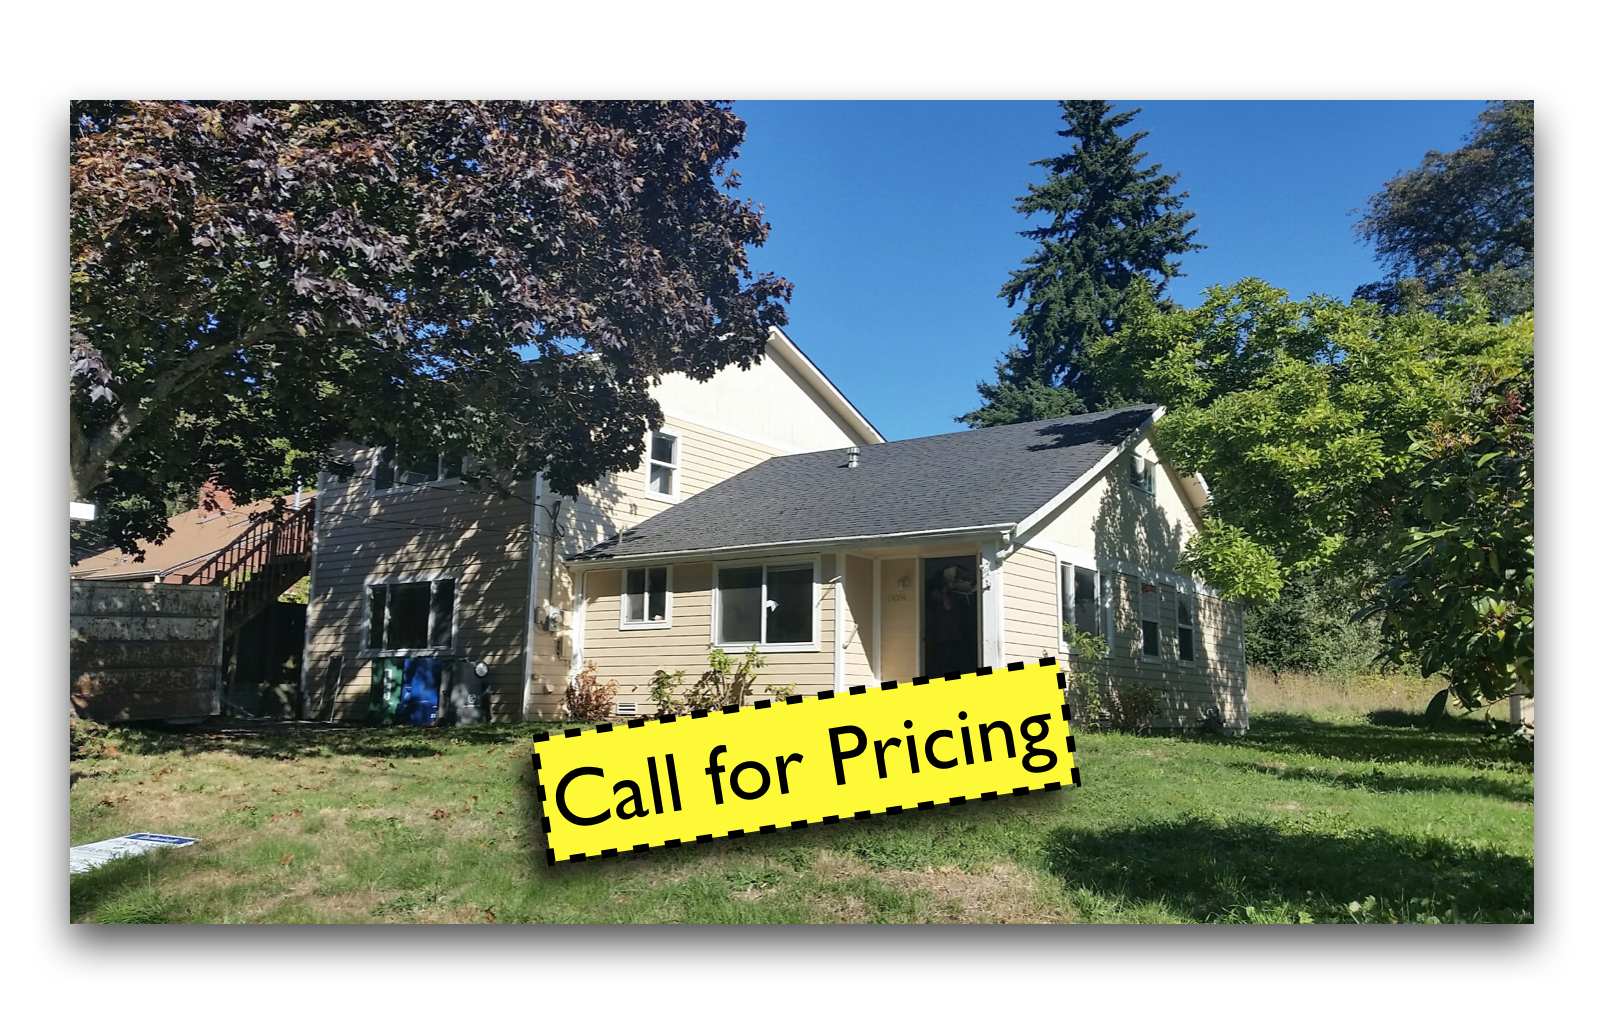 Olympic Hills call for pricing